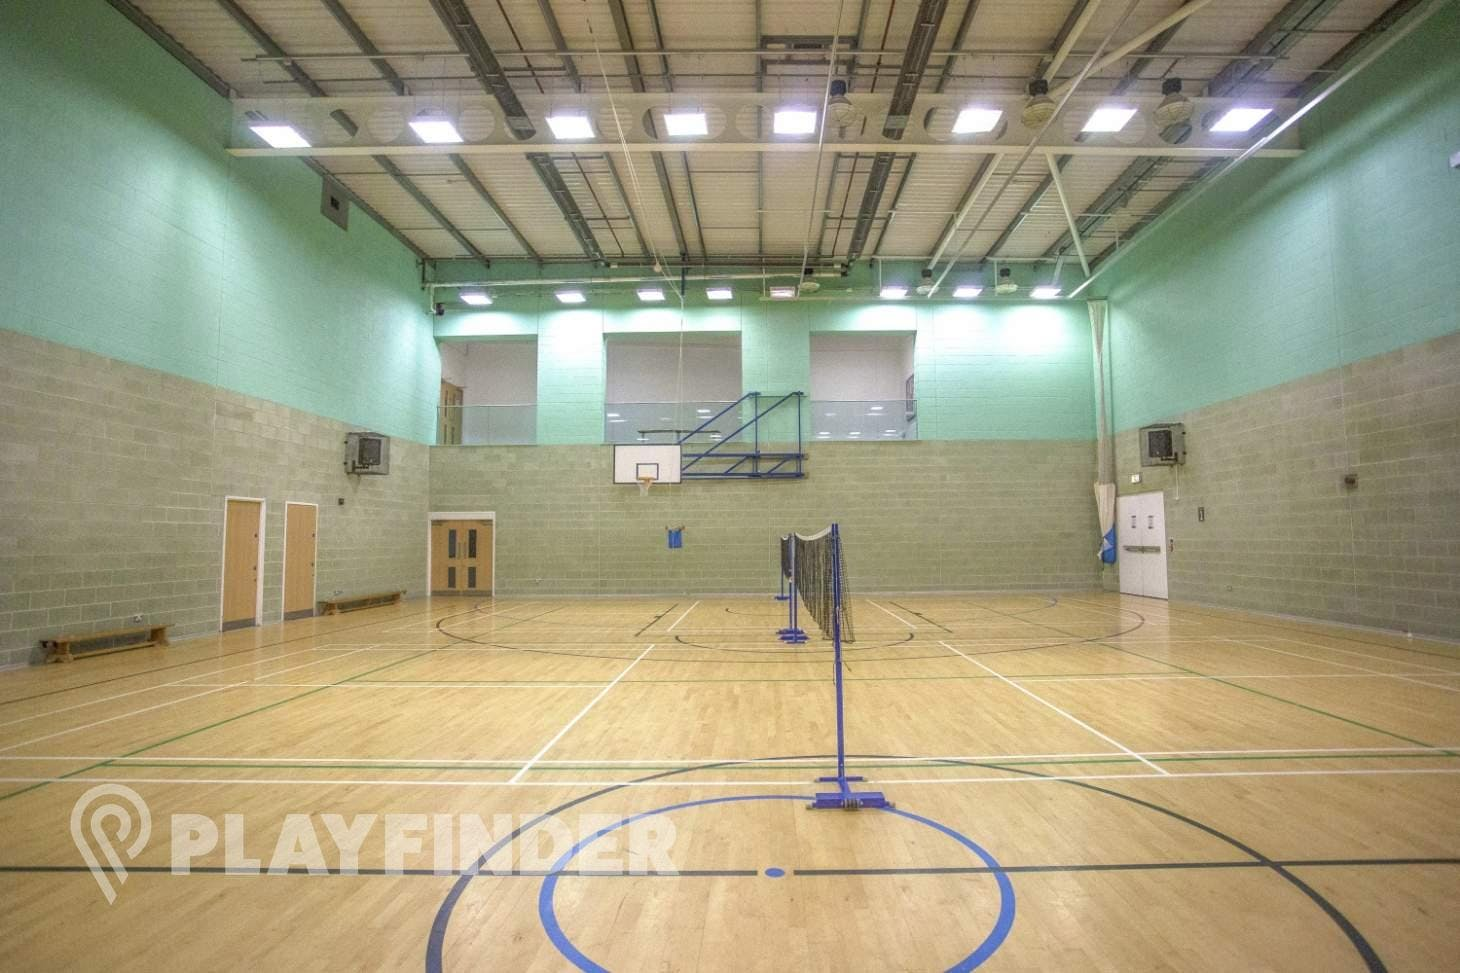 Sidcup Leisure Centre Sports hall space hire